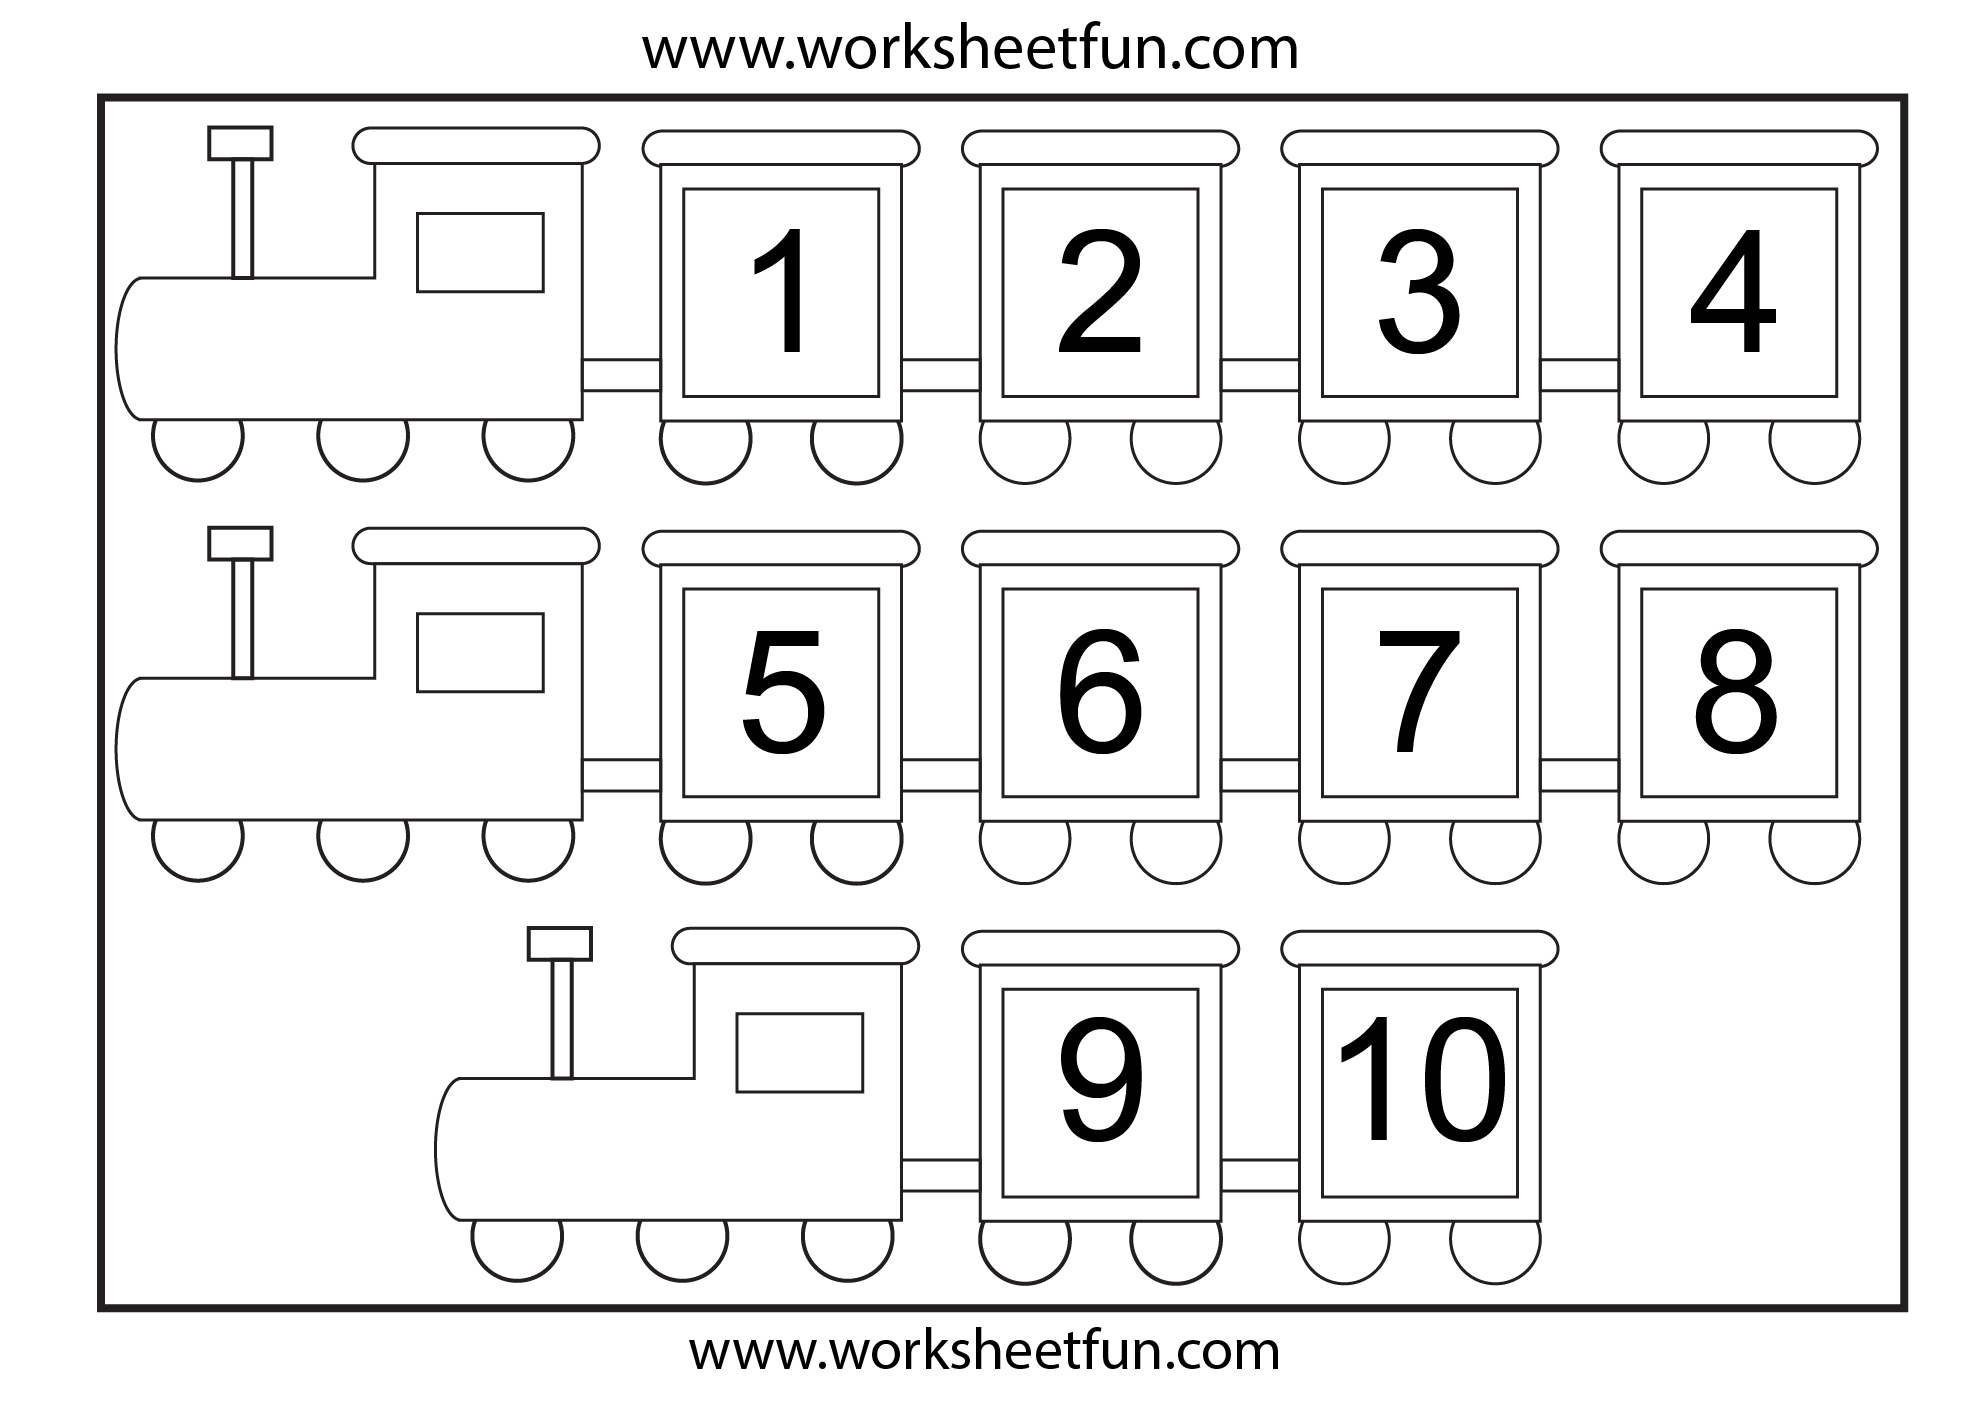 Missing Number Worksheet New 188 Missing Number